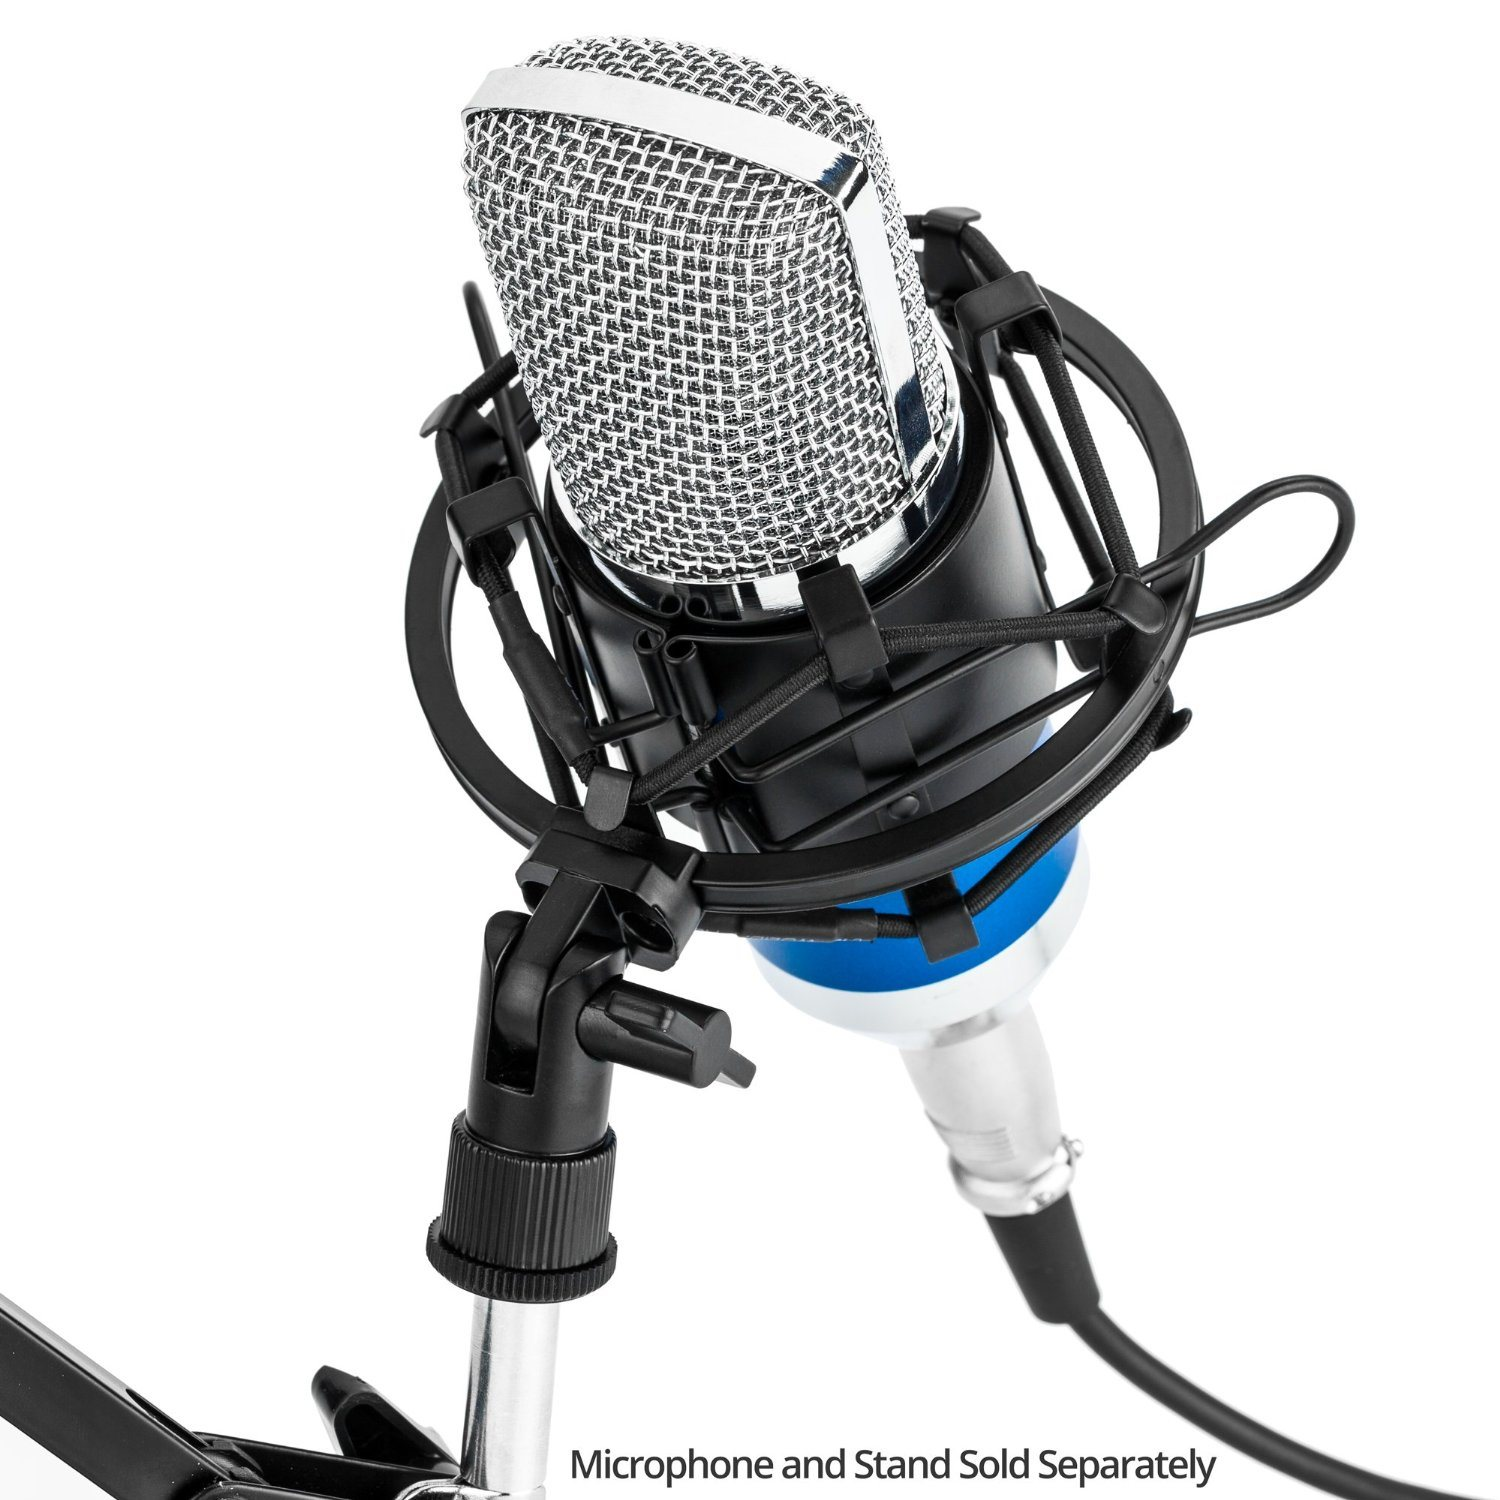 T-5 Black for 48-51mm Microphone Ideal for Radio Broadcasting Studio / Voice-Over / Sound Studio / Recording (Black) Universal Metal Microphone Shock Mount